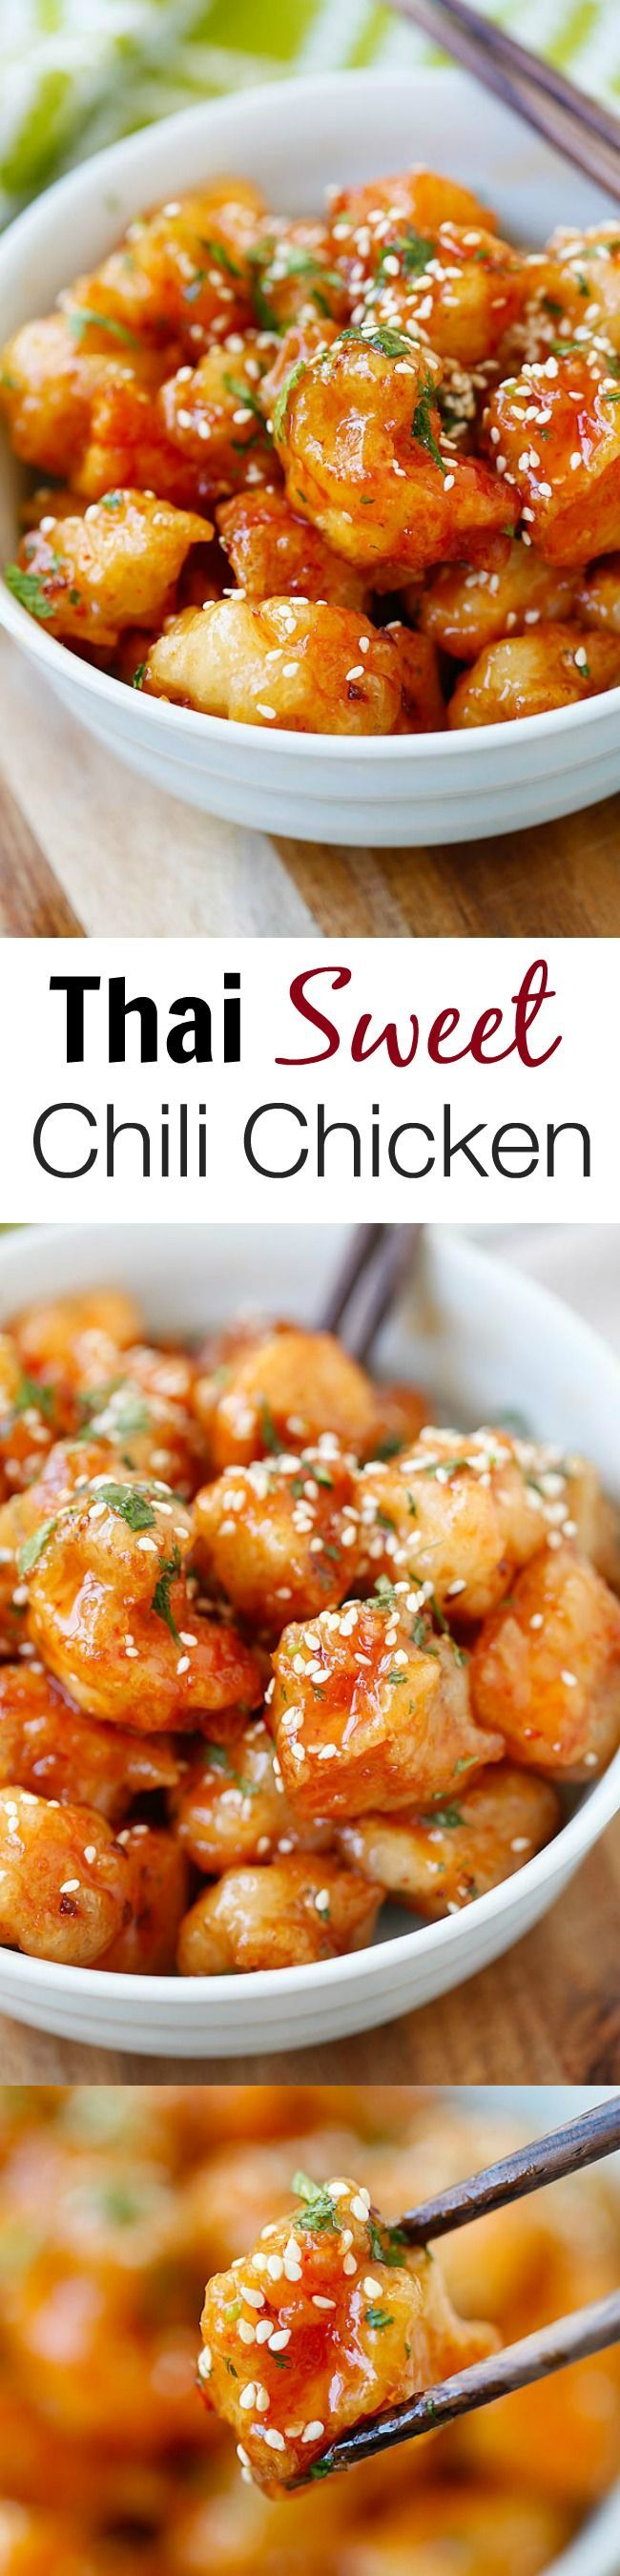 Thai Sweet Chili Chicken recipe with sticky, sweet and savory sweet chili sauce. So good you will want to lick the plate!